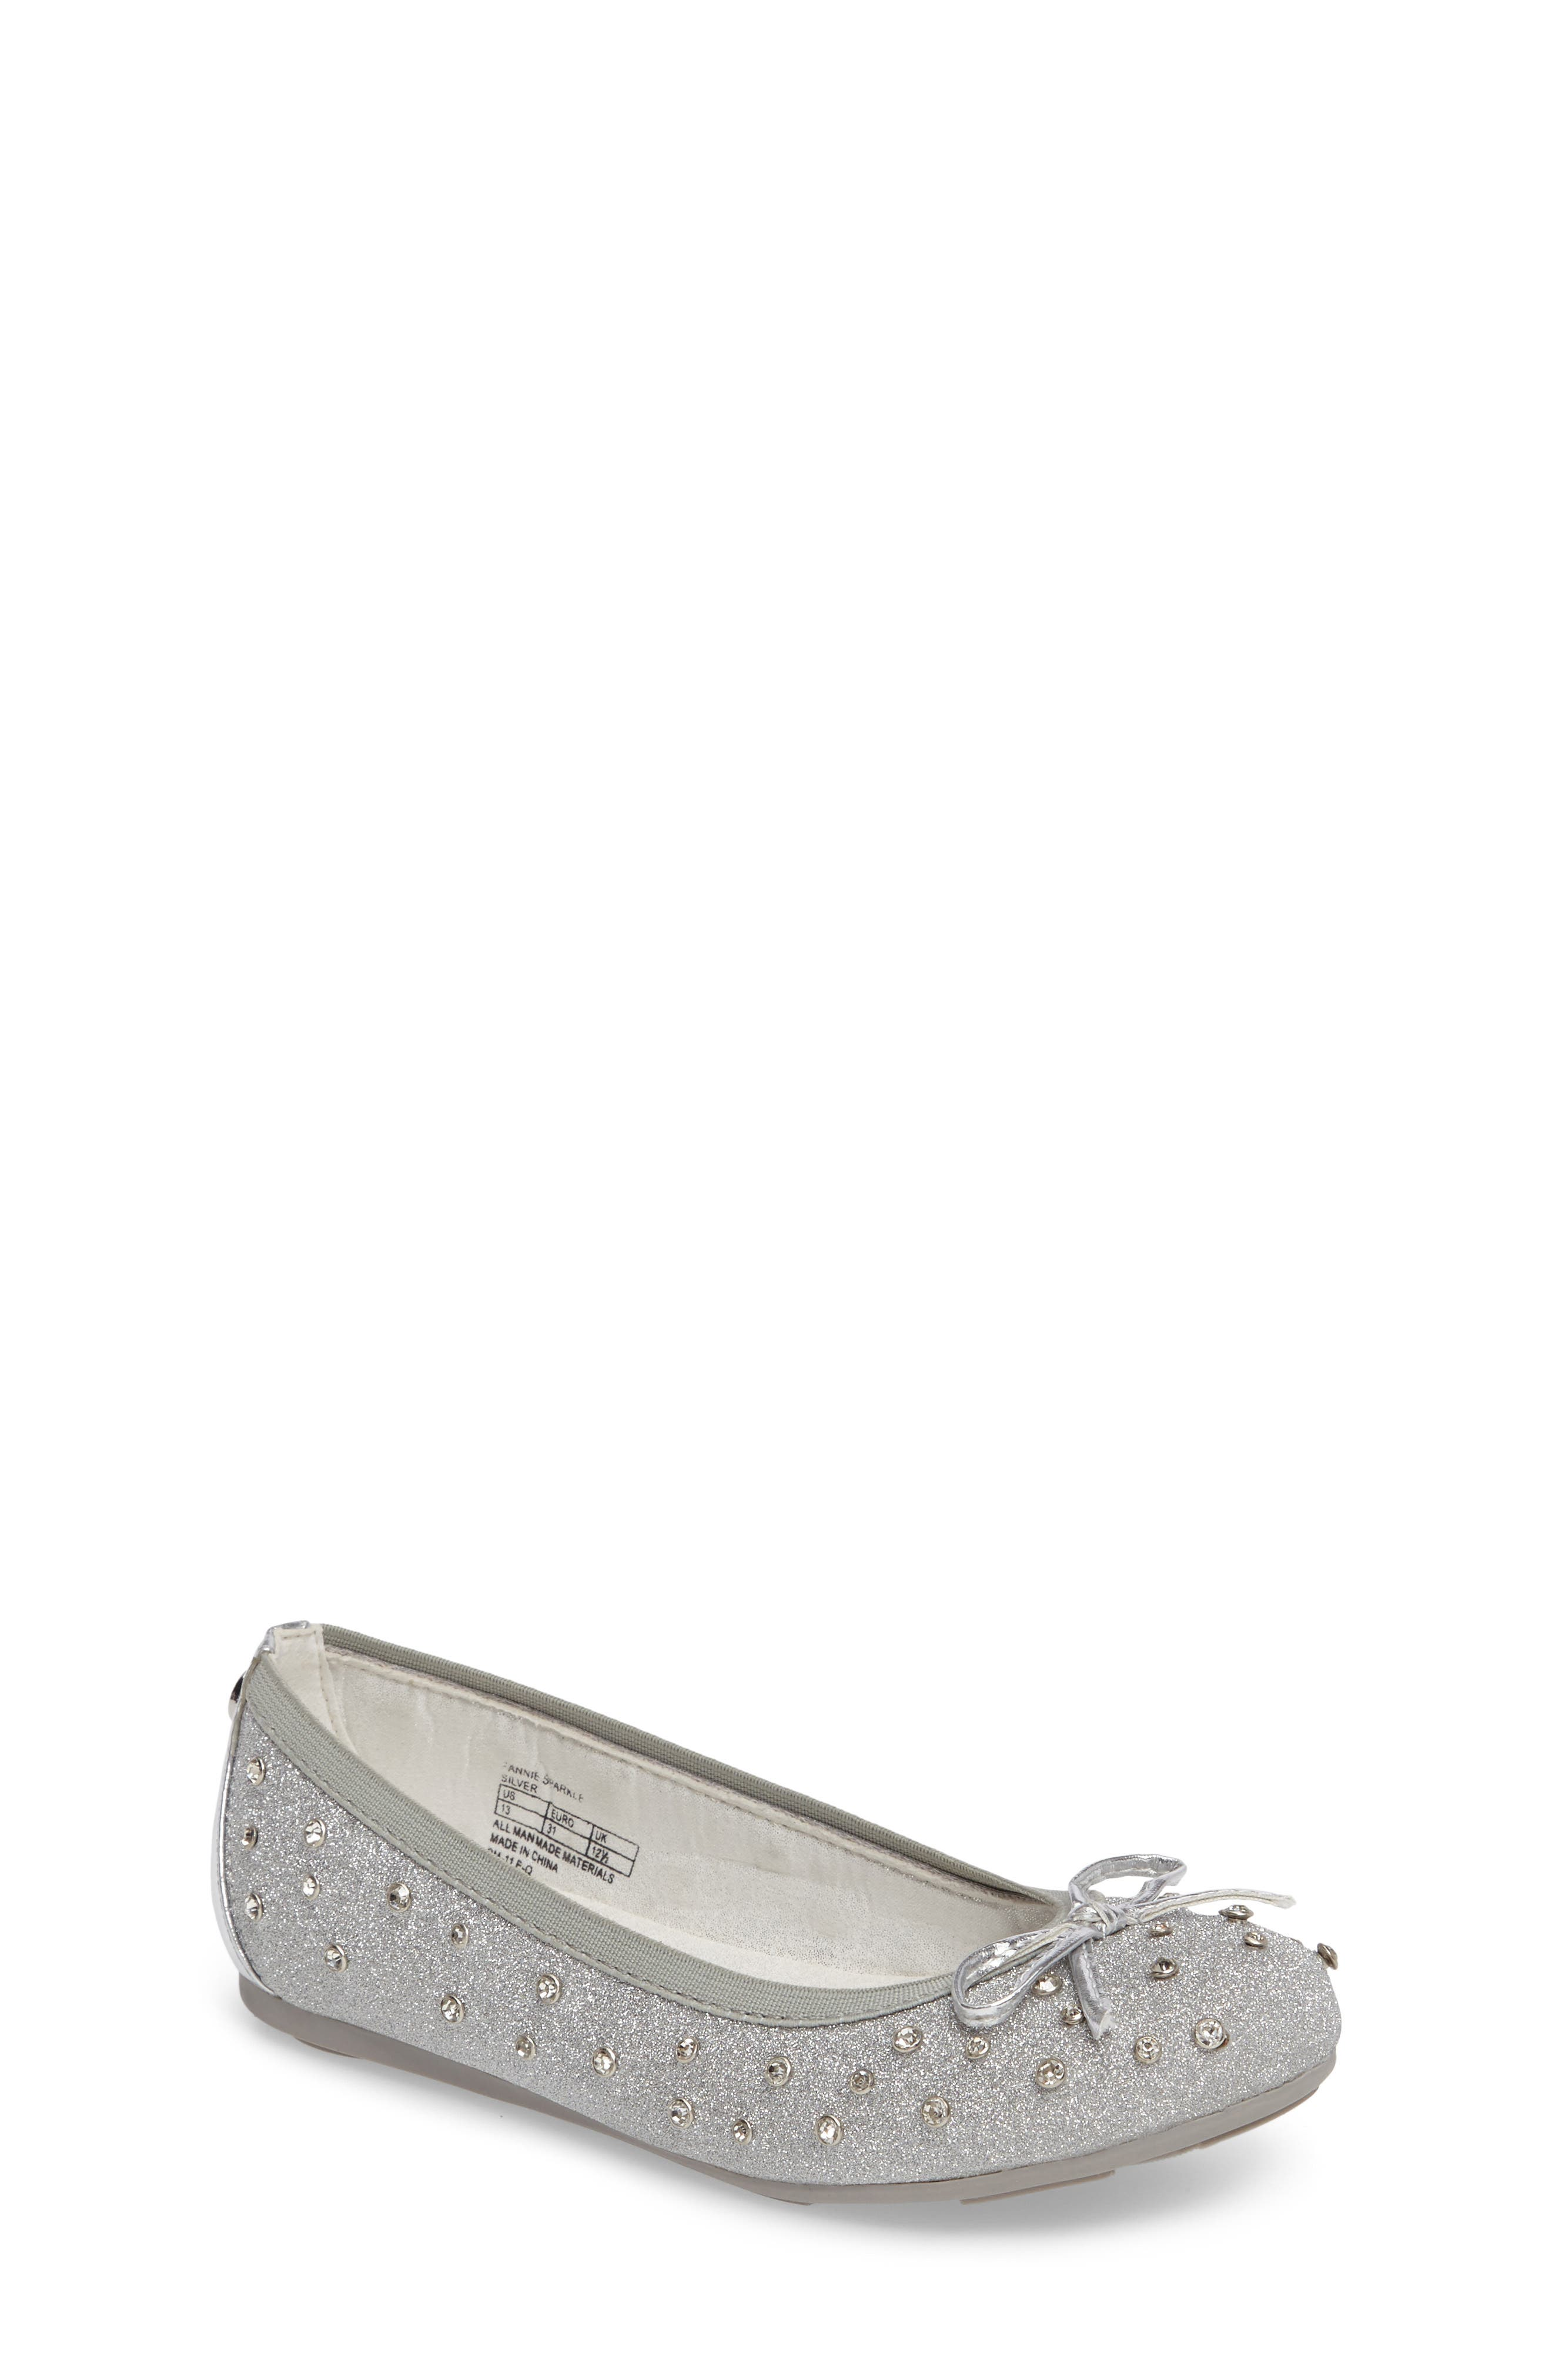 Stuart Weitzman Fannie Sparkle Ballet Flat (Walker, Toddler, Little Kid & Big Kid)